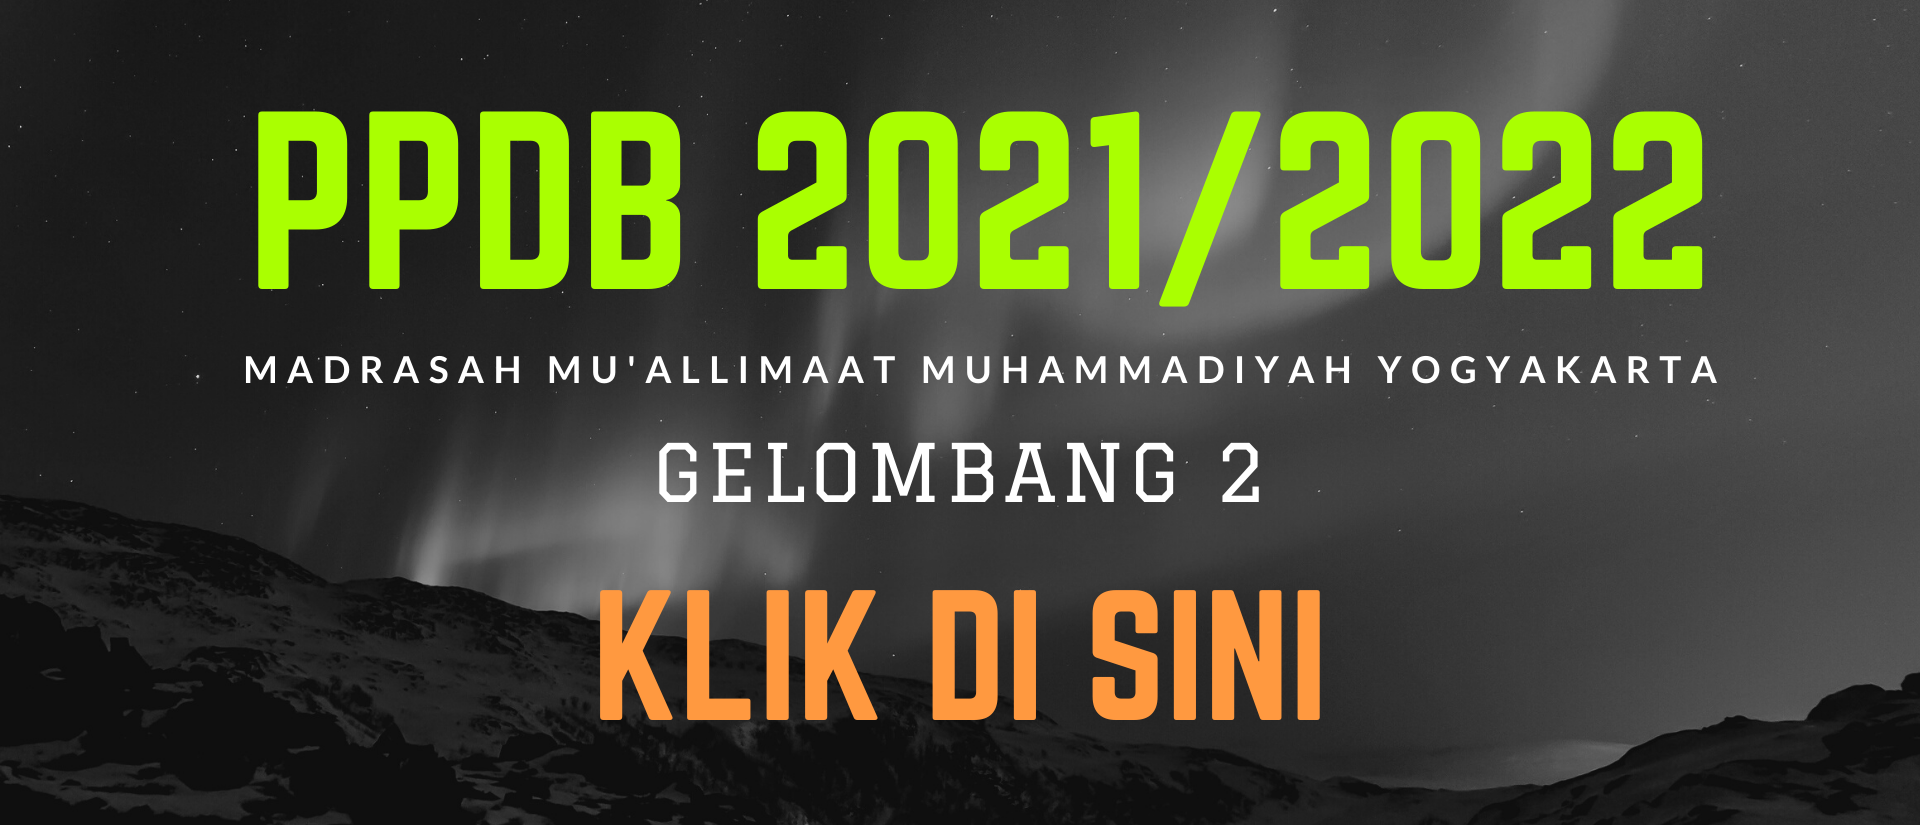 PPDB Mu'allimaat 2021/2022